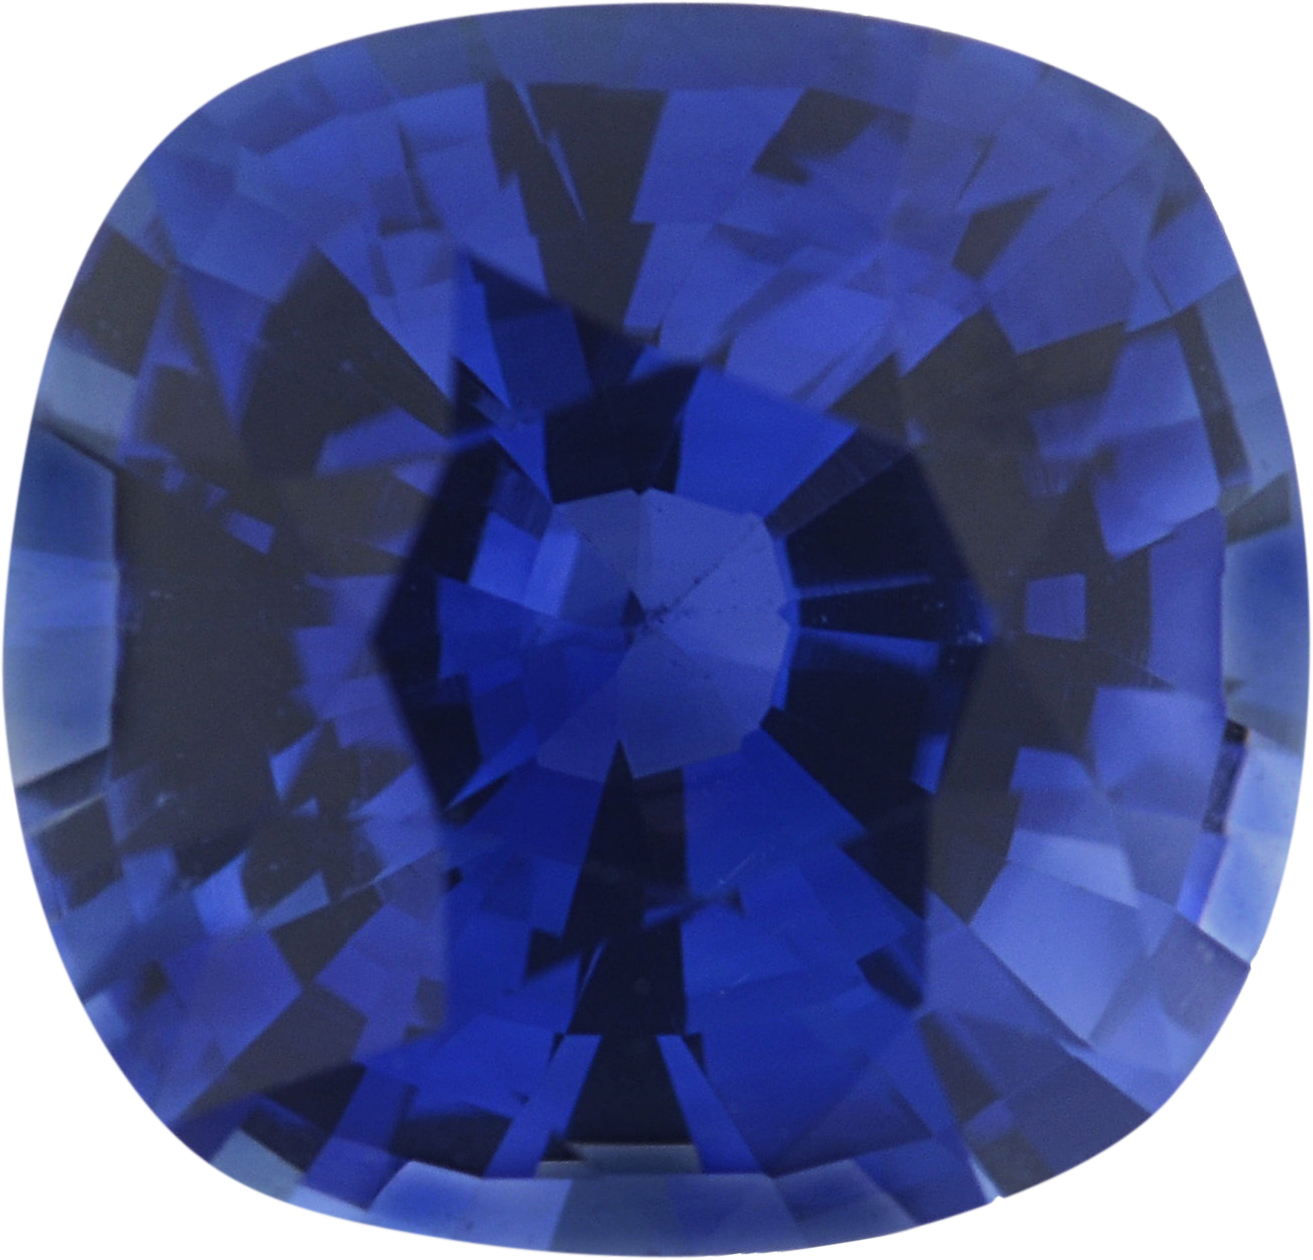 6.53 x 6.25 mm, Blue Loose Sapphire Gemstone in Antique Square Cut, 1.34 carats